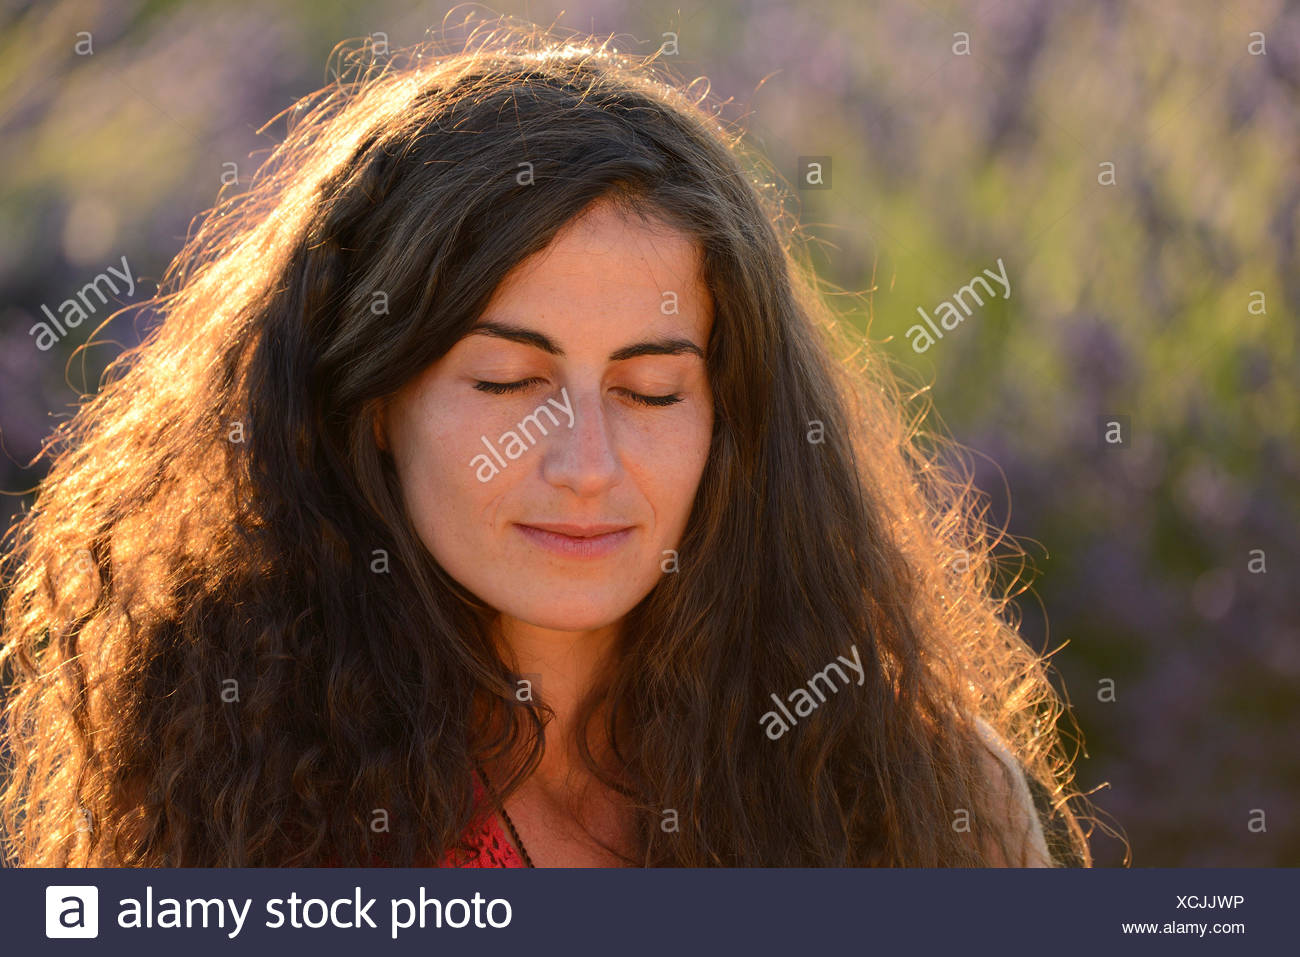 Europe France Provence Vaucluse Lavender Field Woman Dream Dreaming Red Dress Bloom Blooming Nature Girl French Brunette H